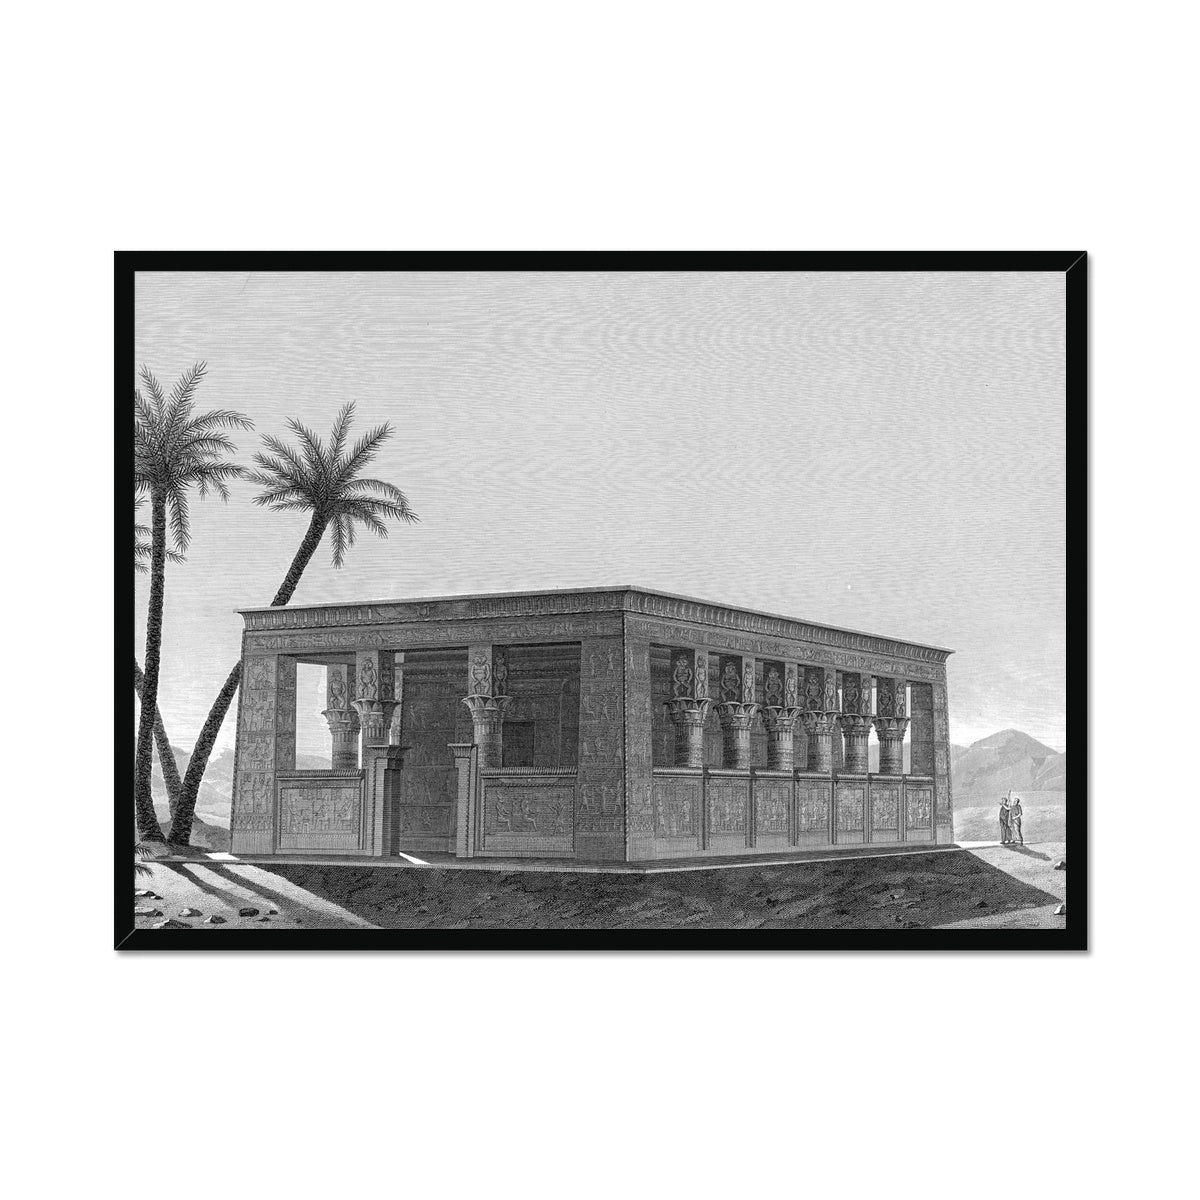 Small Temple Perspective - Edfu Egypt -  Framed Print